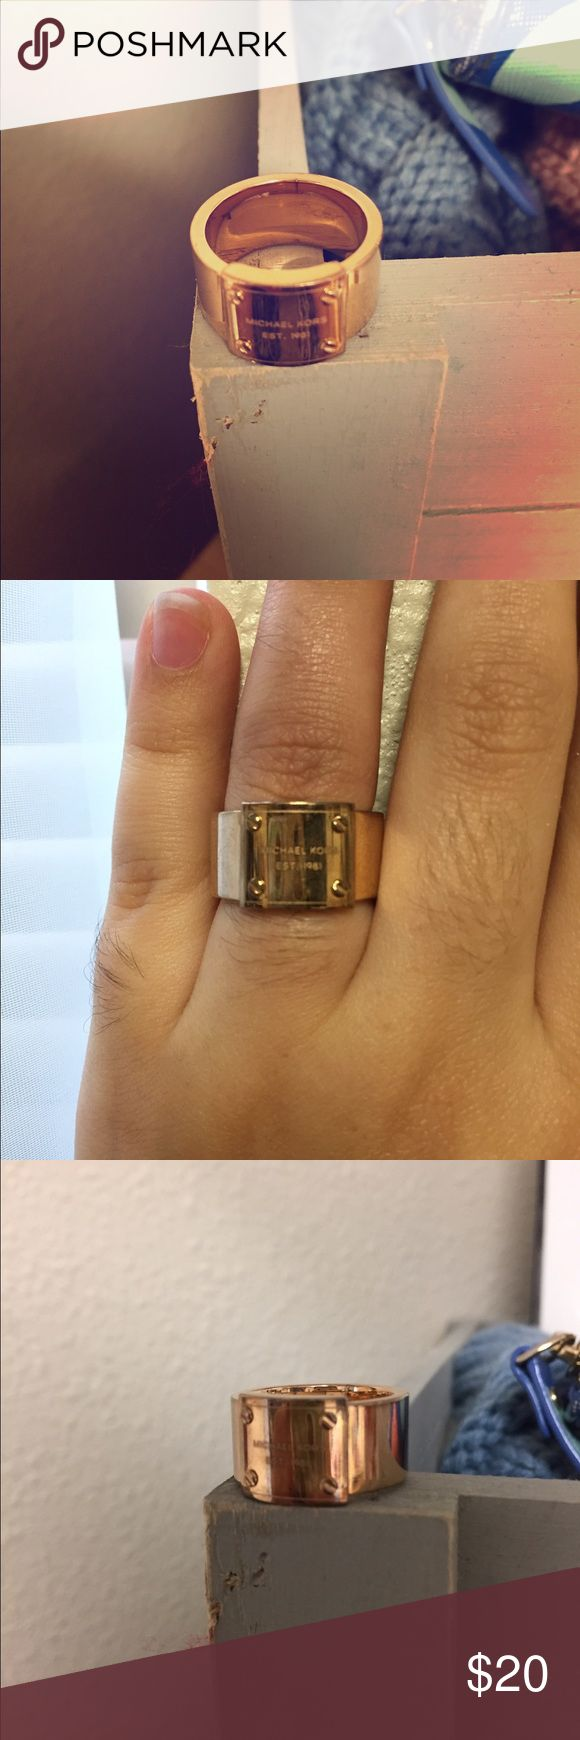 Michael Kors ring sorry for such awkward pictures! The lighting in my dorm is not good! Worn once!!! Very pretty on!!! Copper color. KORS Michael Kors Jewelry Rings